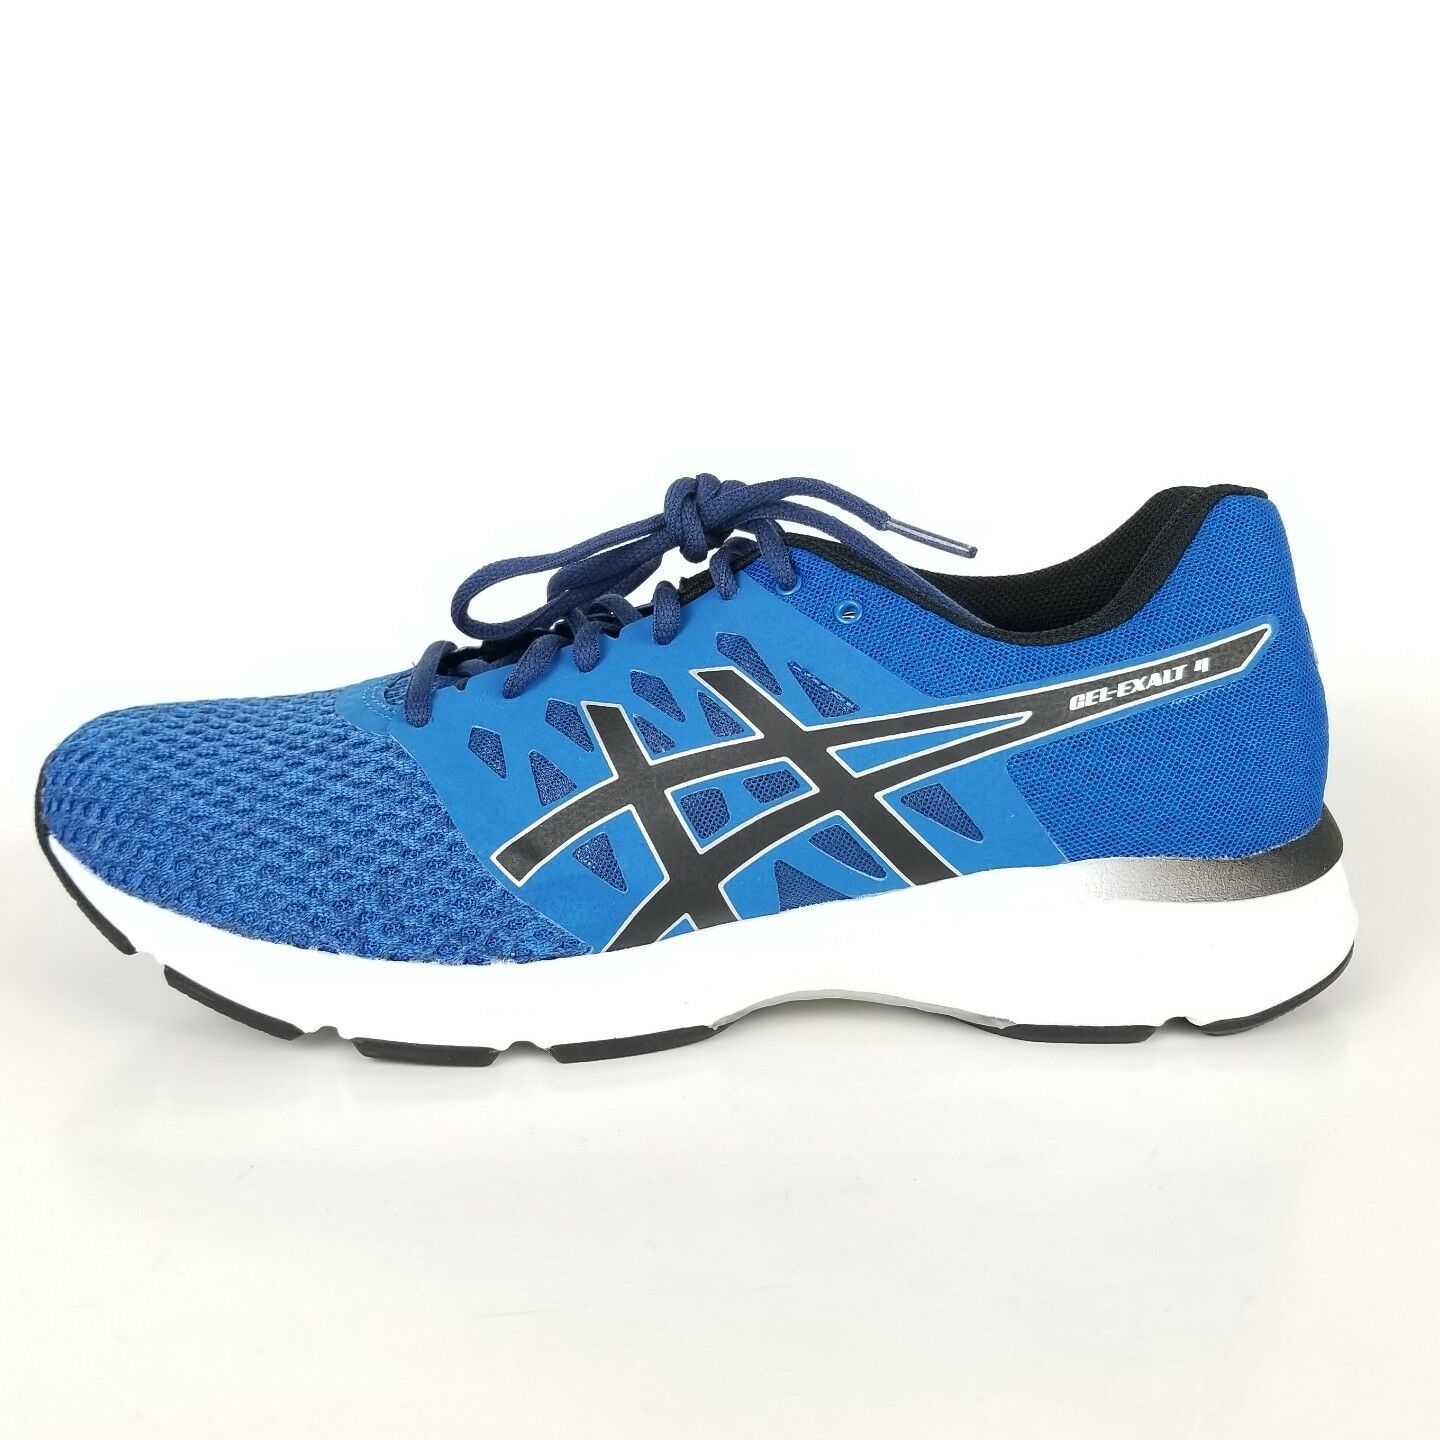 Asics GEL-Exalt 4 Men's Running shoes Duomax Ortholite Multiple Sizes